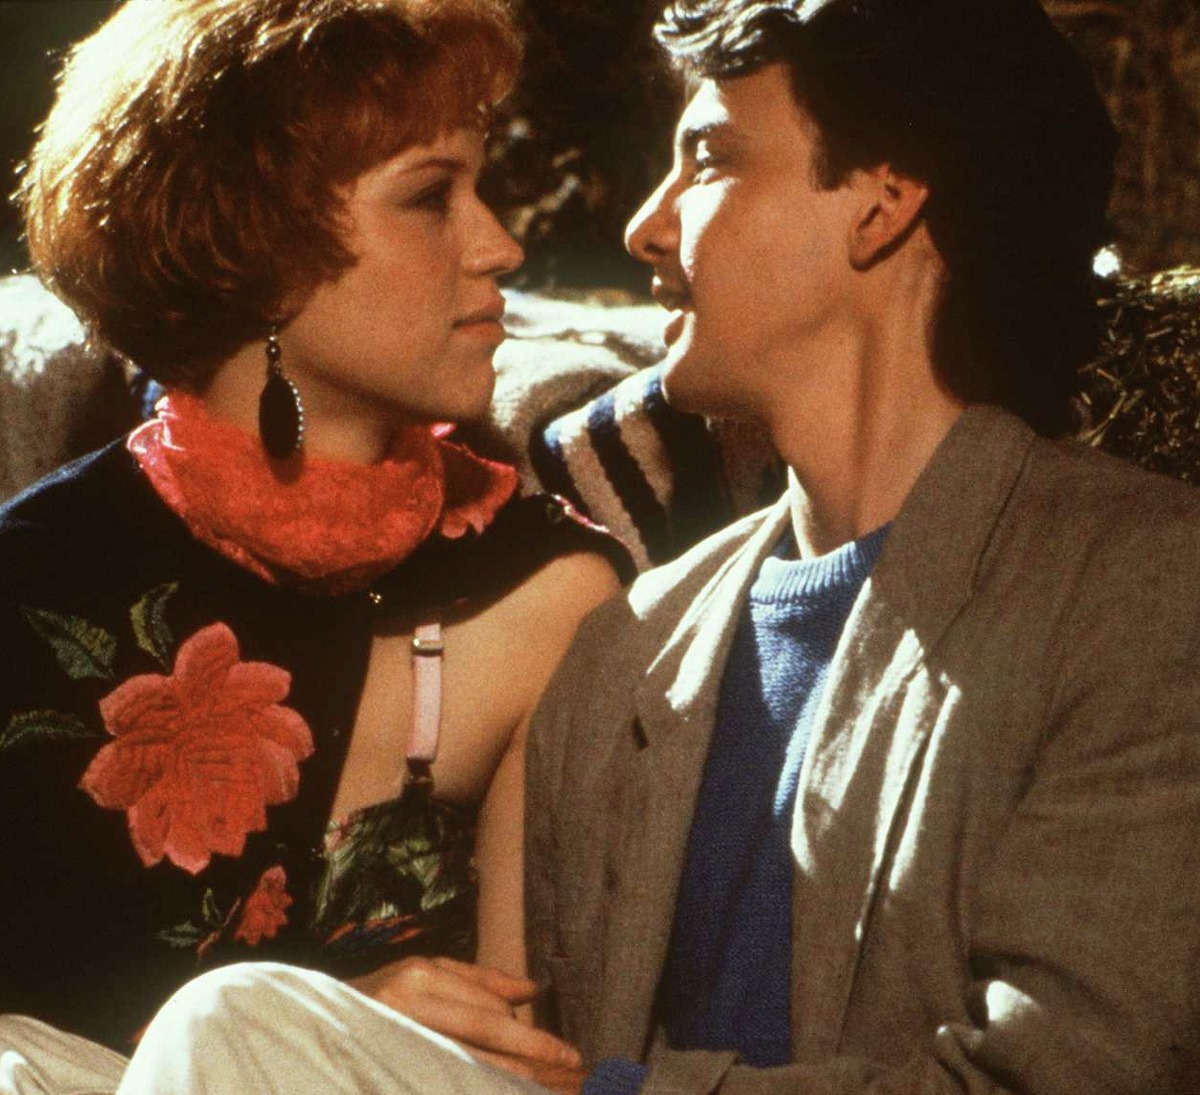 The movie grossed $40,471,663 after debuting Feb. 28, 1986.It was filmed in the same high school